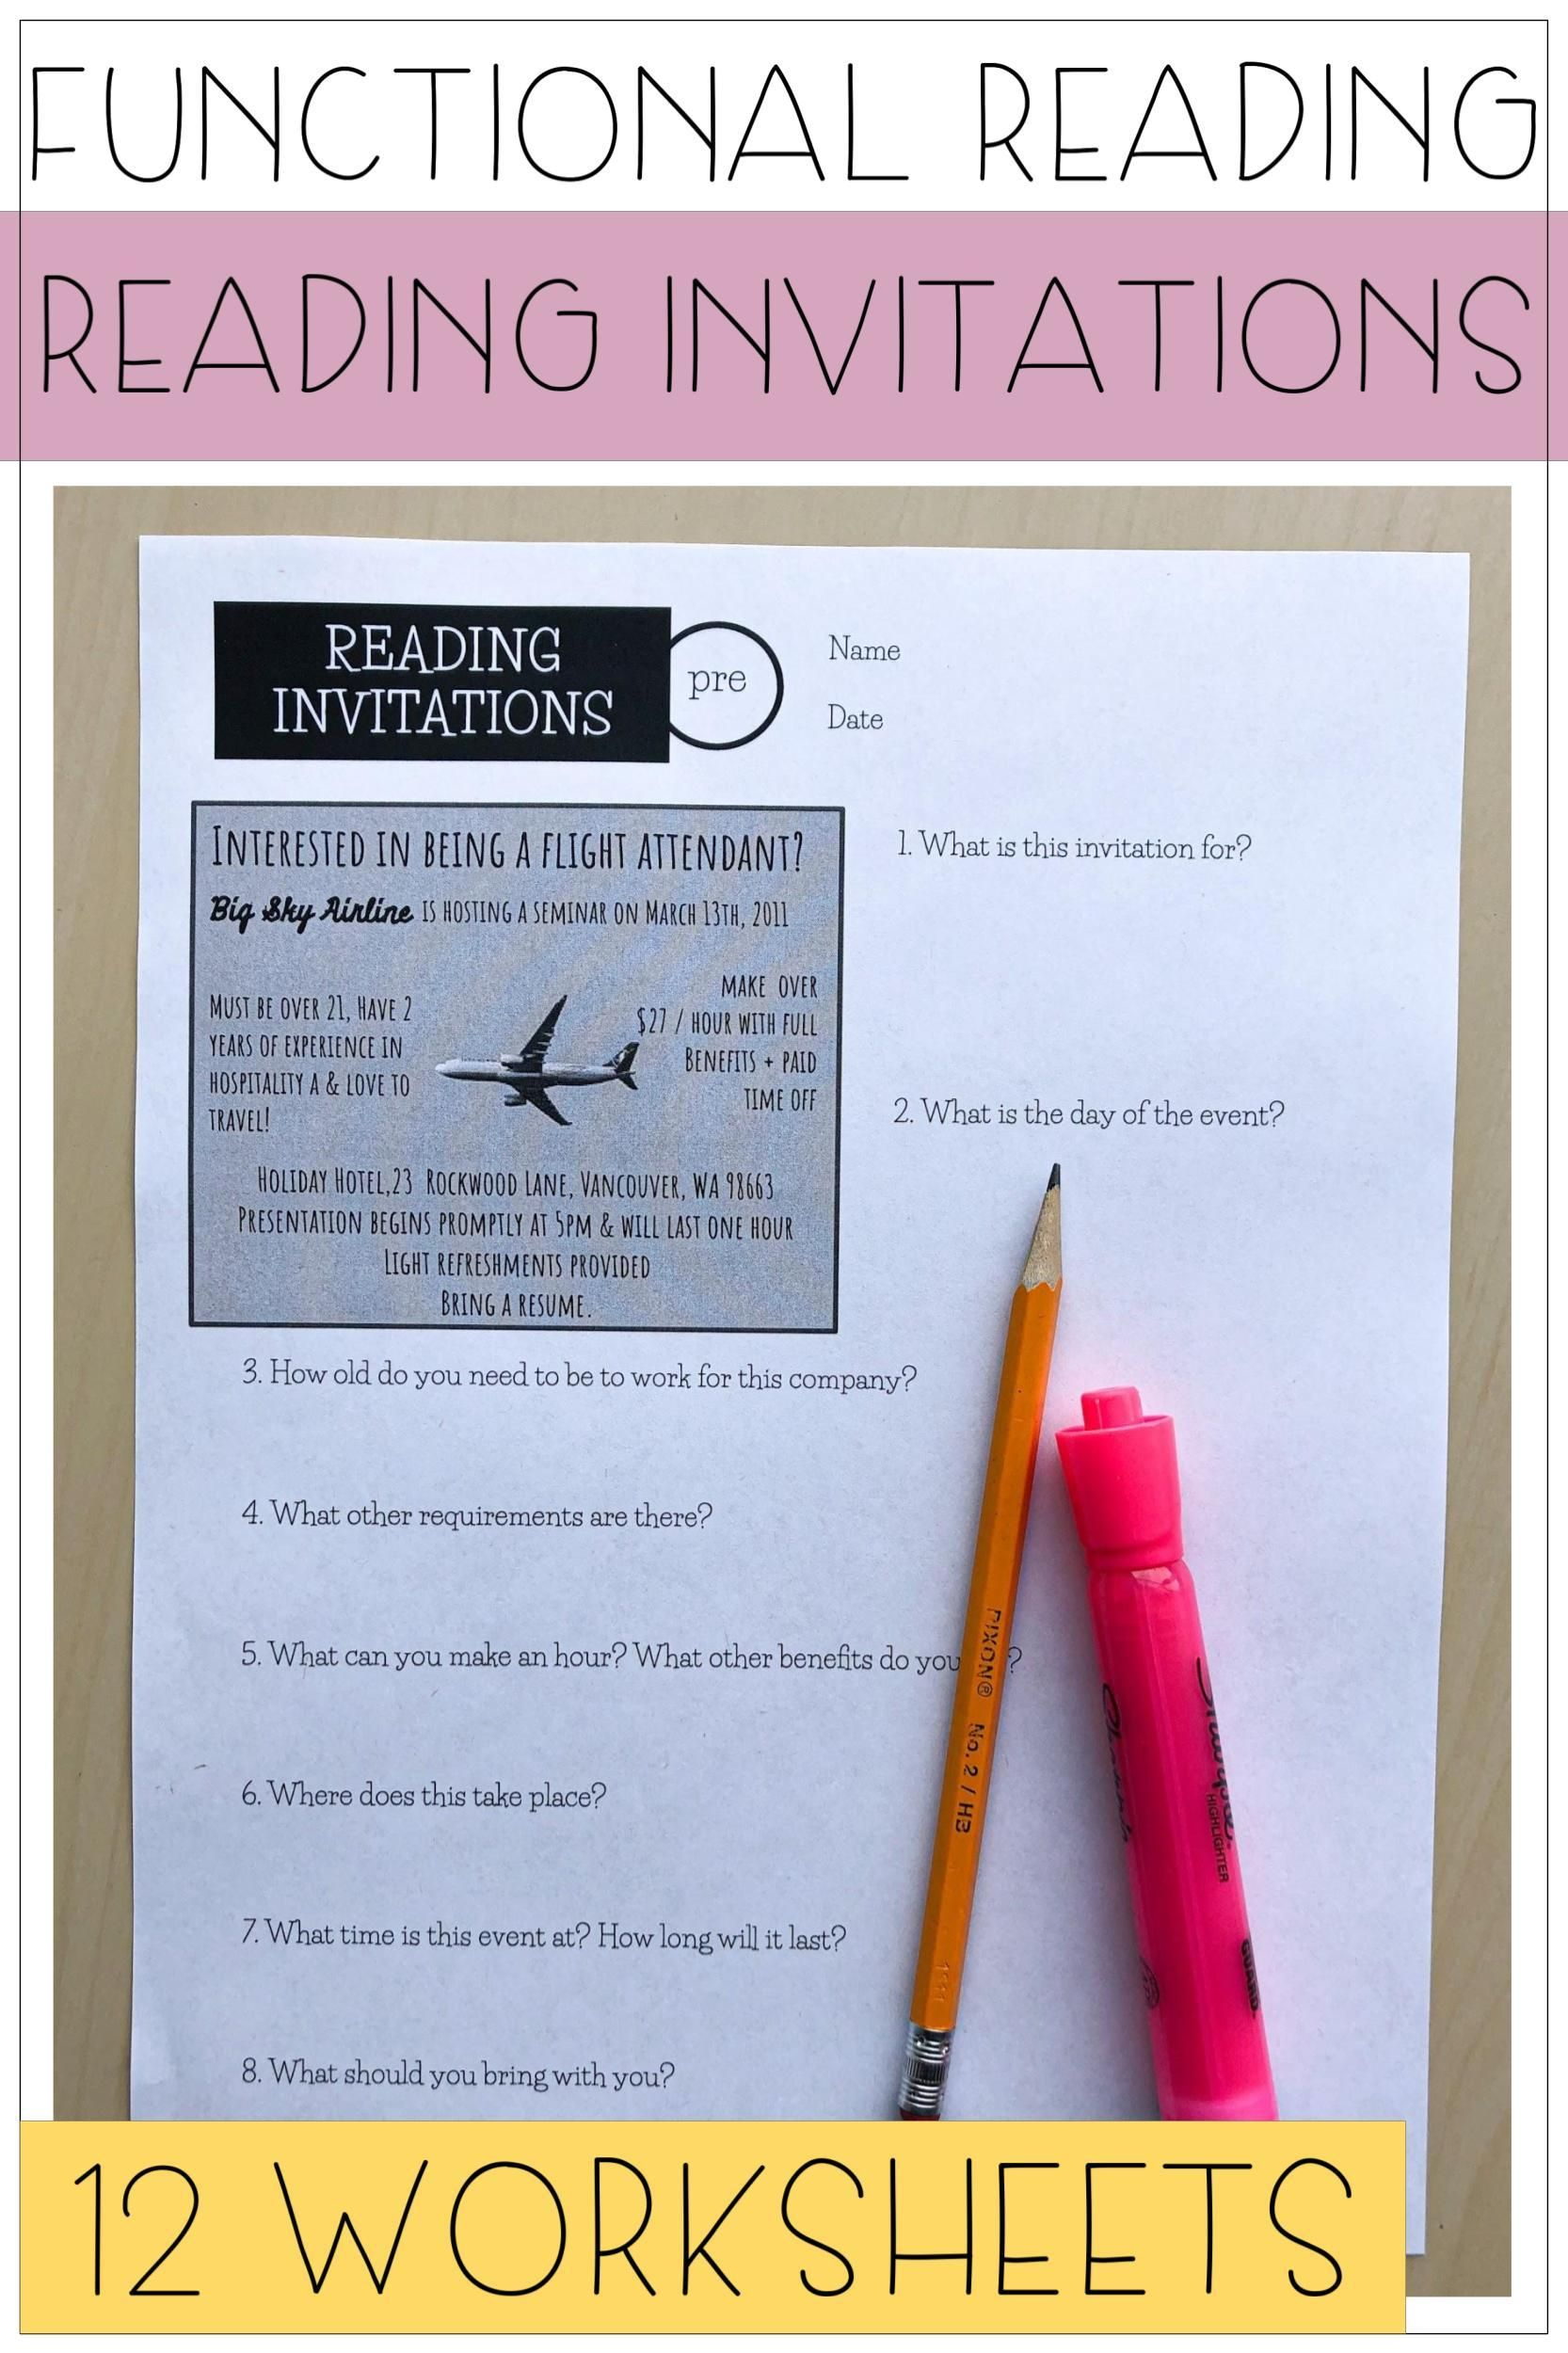 Reading Invitations Worksheets For Life Skills Functional